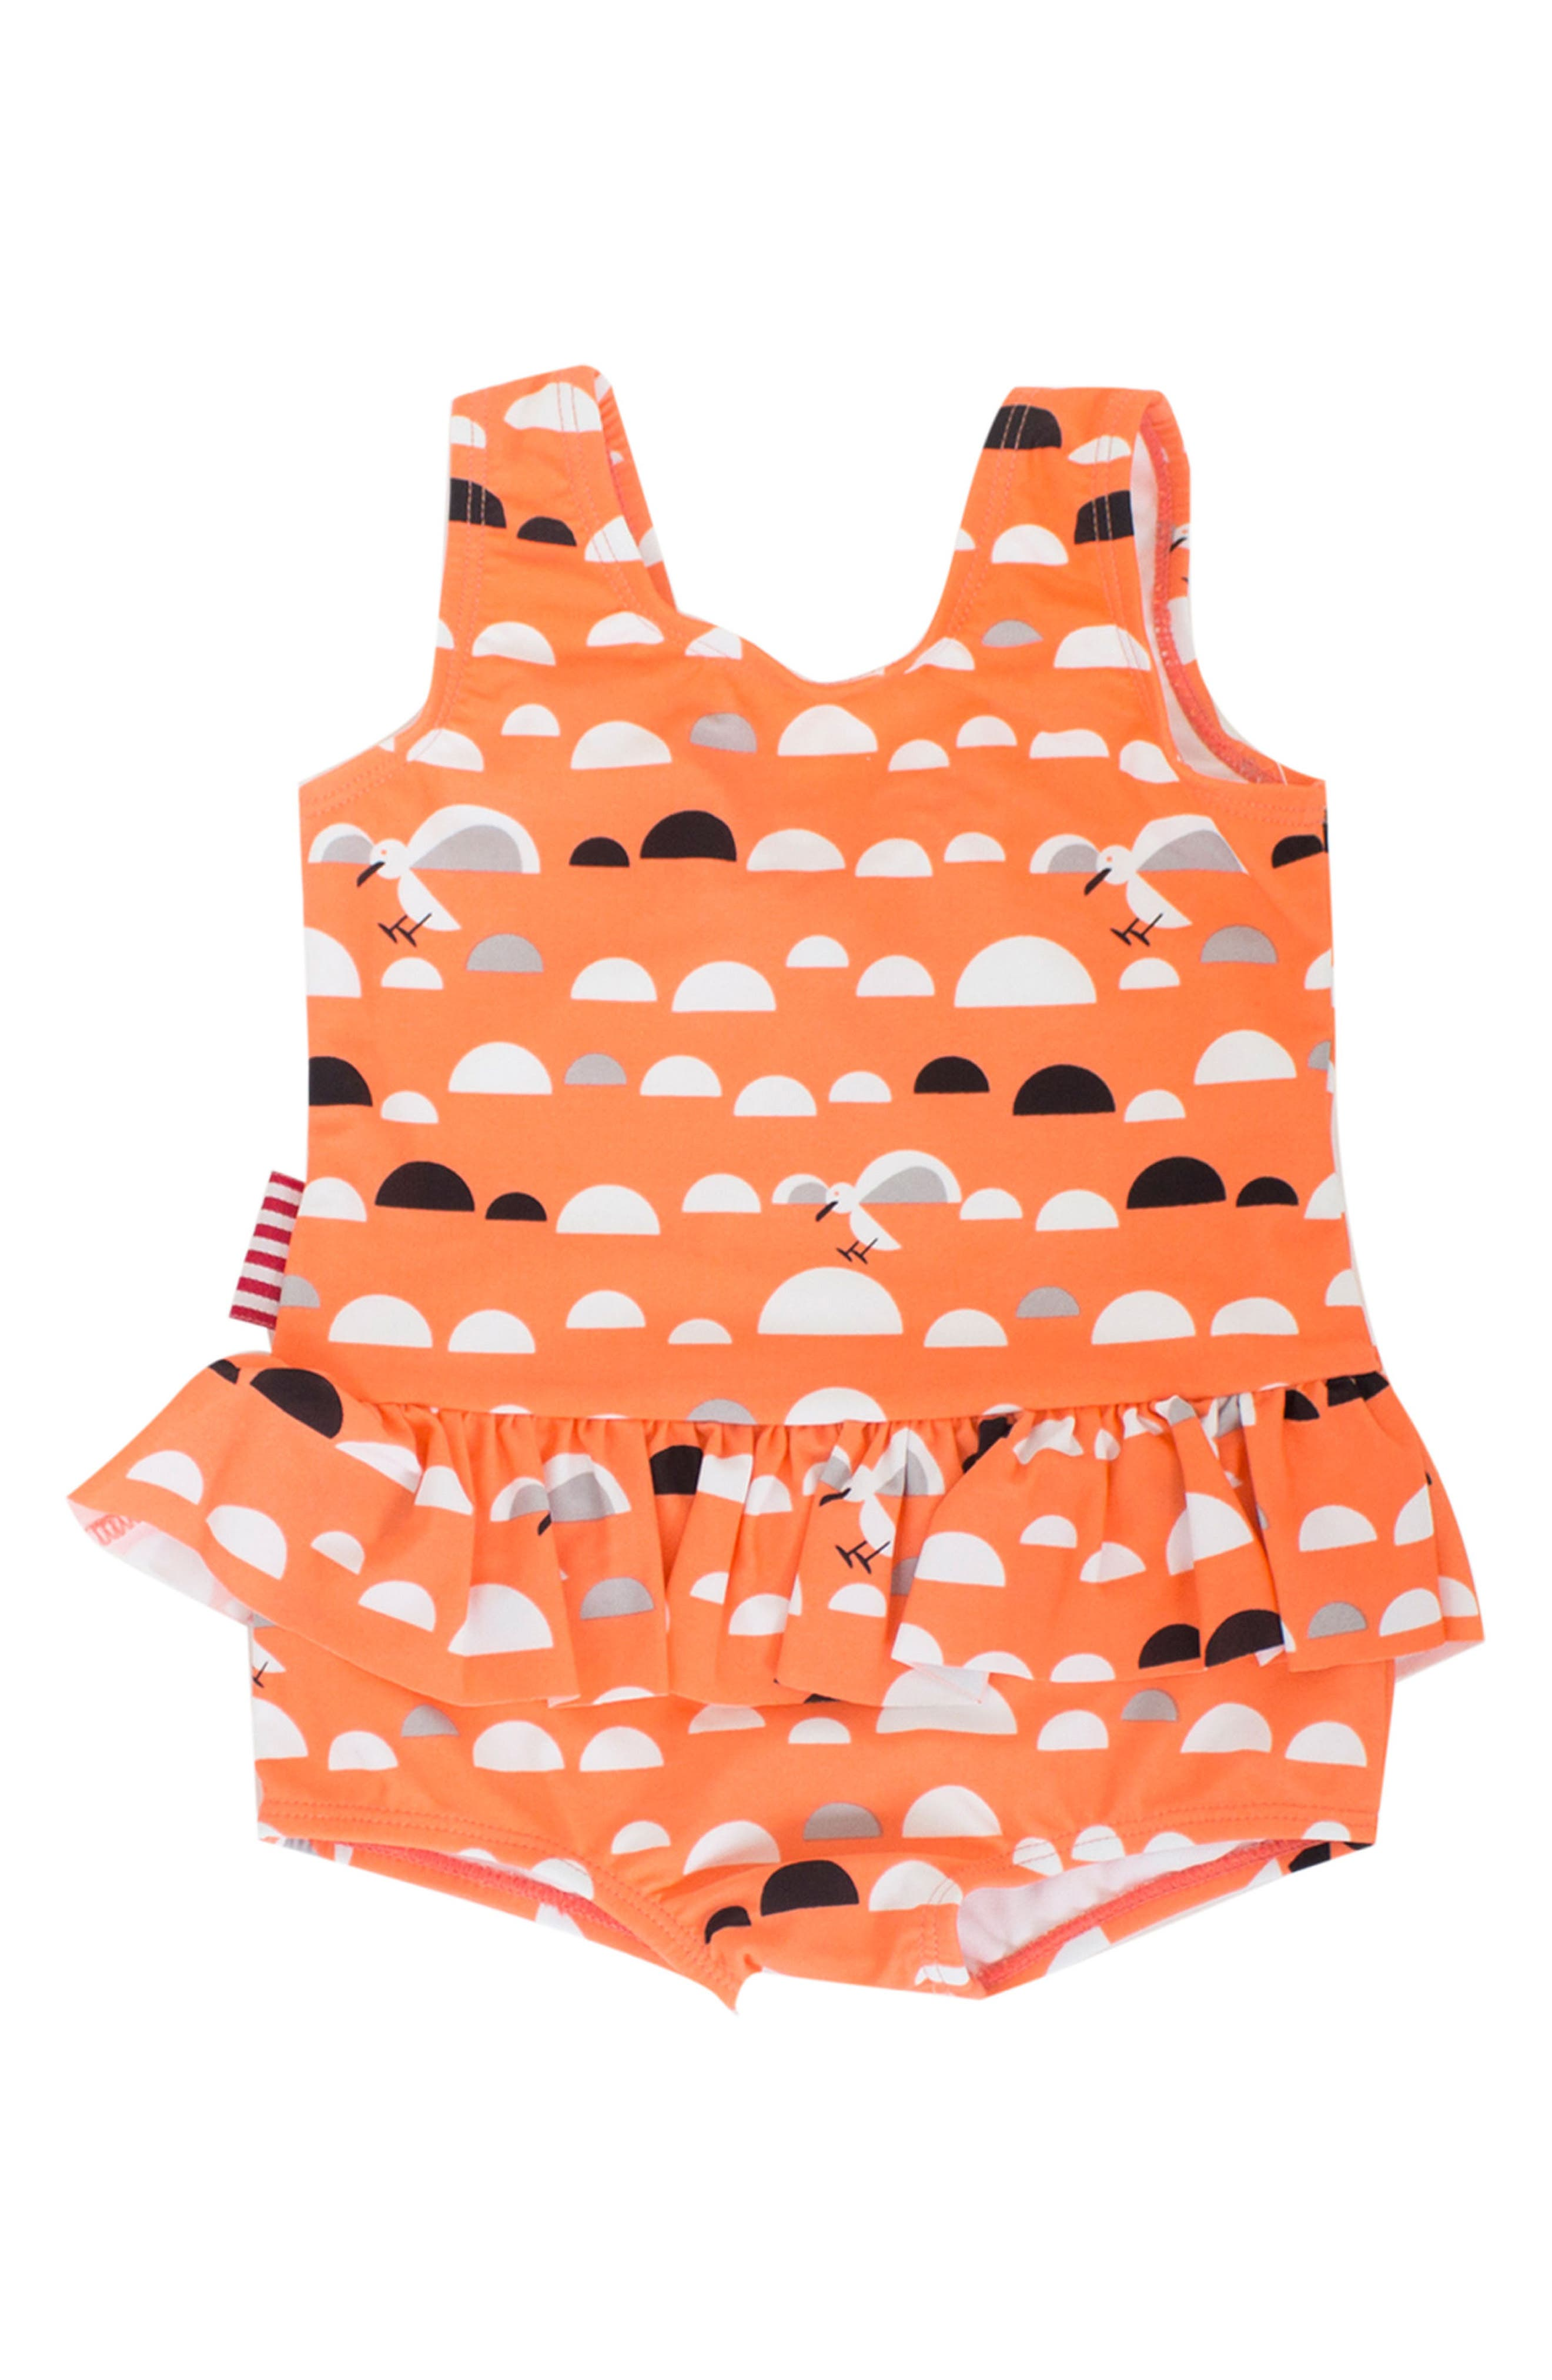 Alternate Image 1 Selected - SOOKIbaby Little Miss C.Gull Skirted One-Piece Swimsuit (Baby Girls)